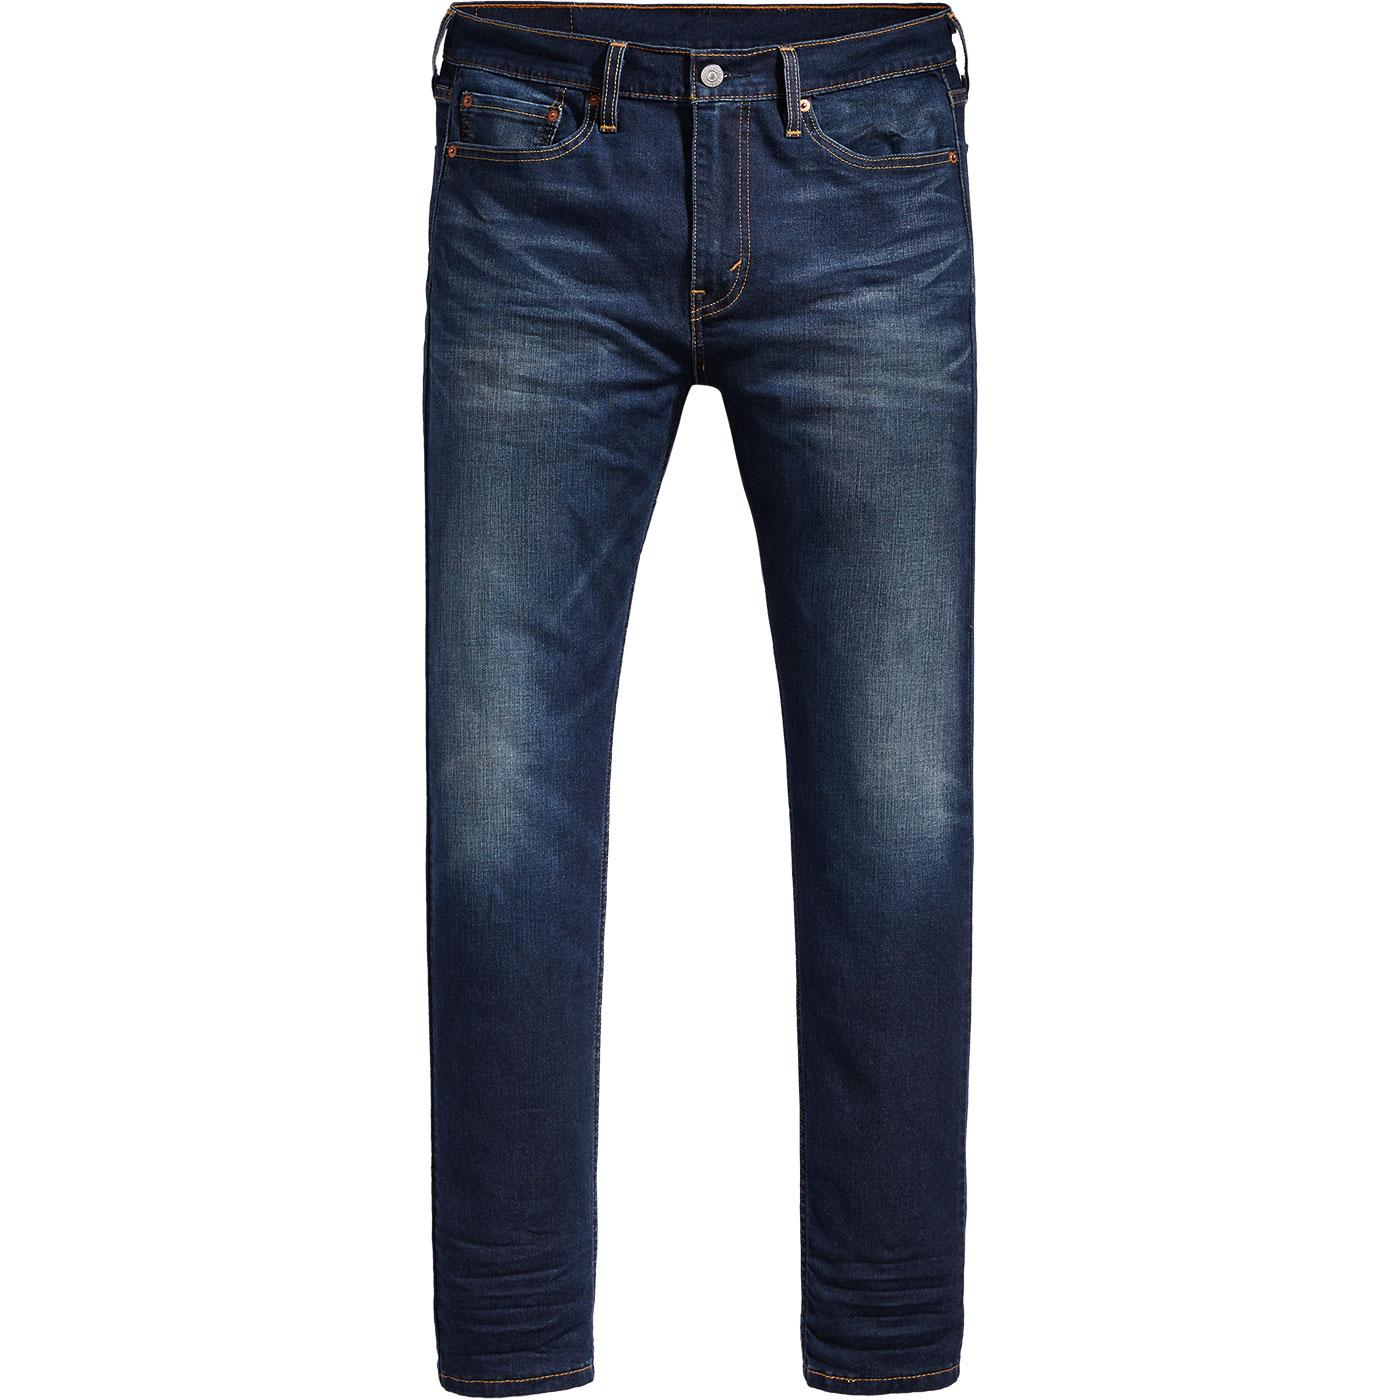 LEVI'S 510 Retro Mod Skinny Jeans (Irish Sea Cool)